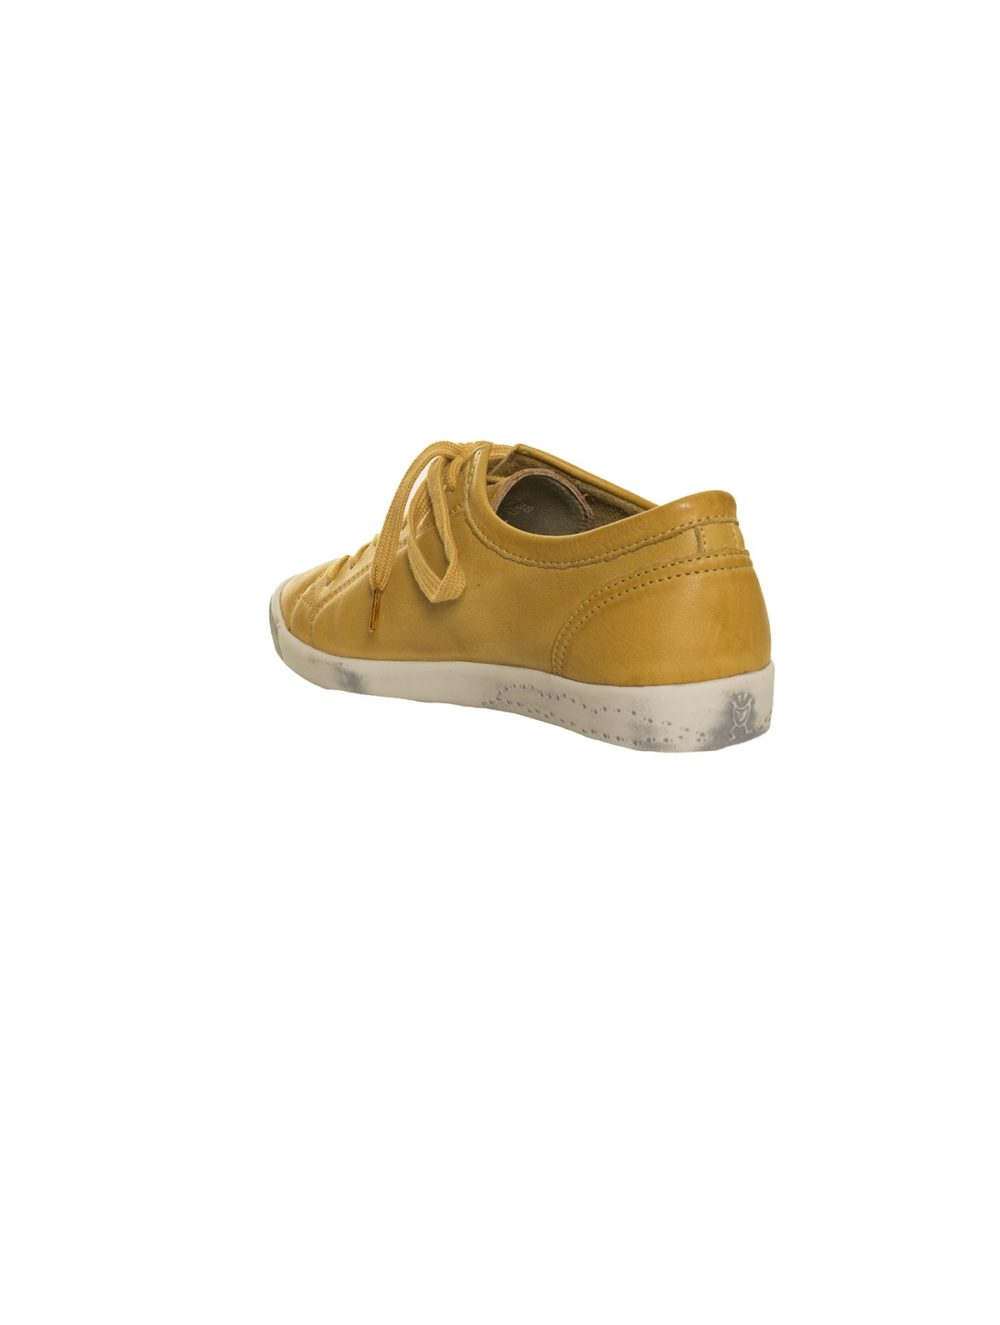 Isla Shoe Softinos Katie Kerr Women's Shoes